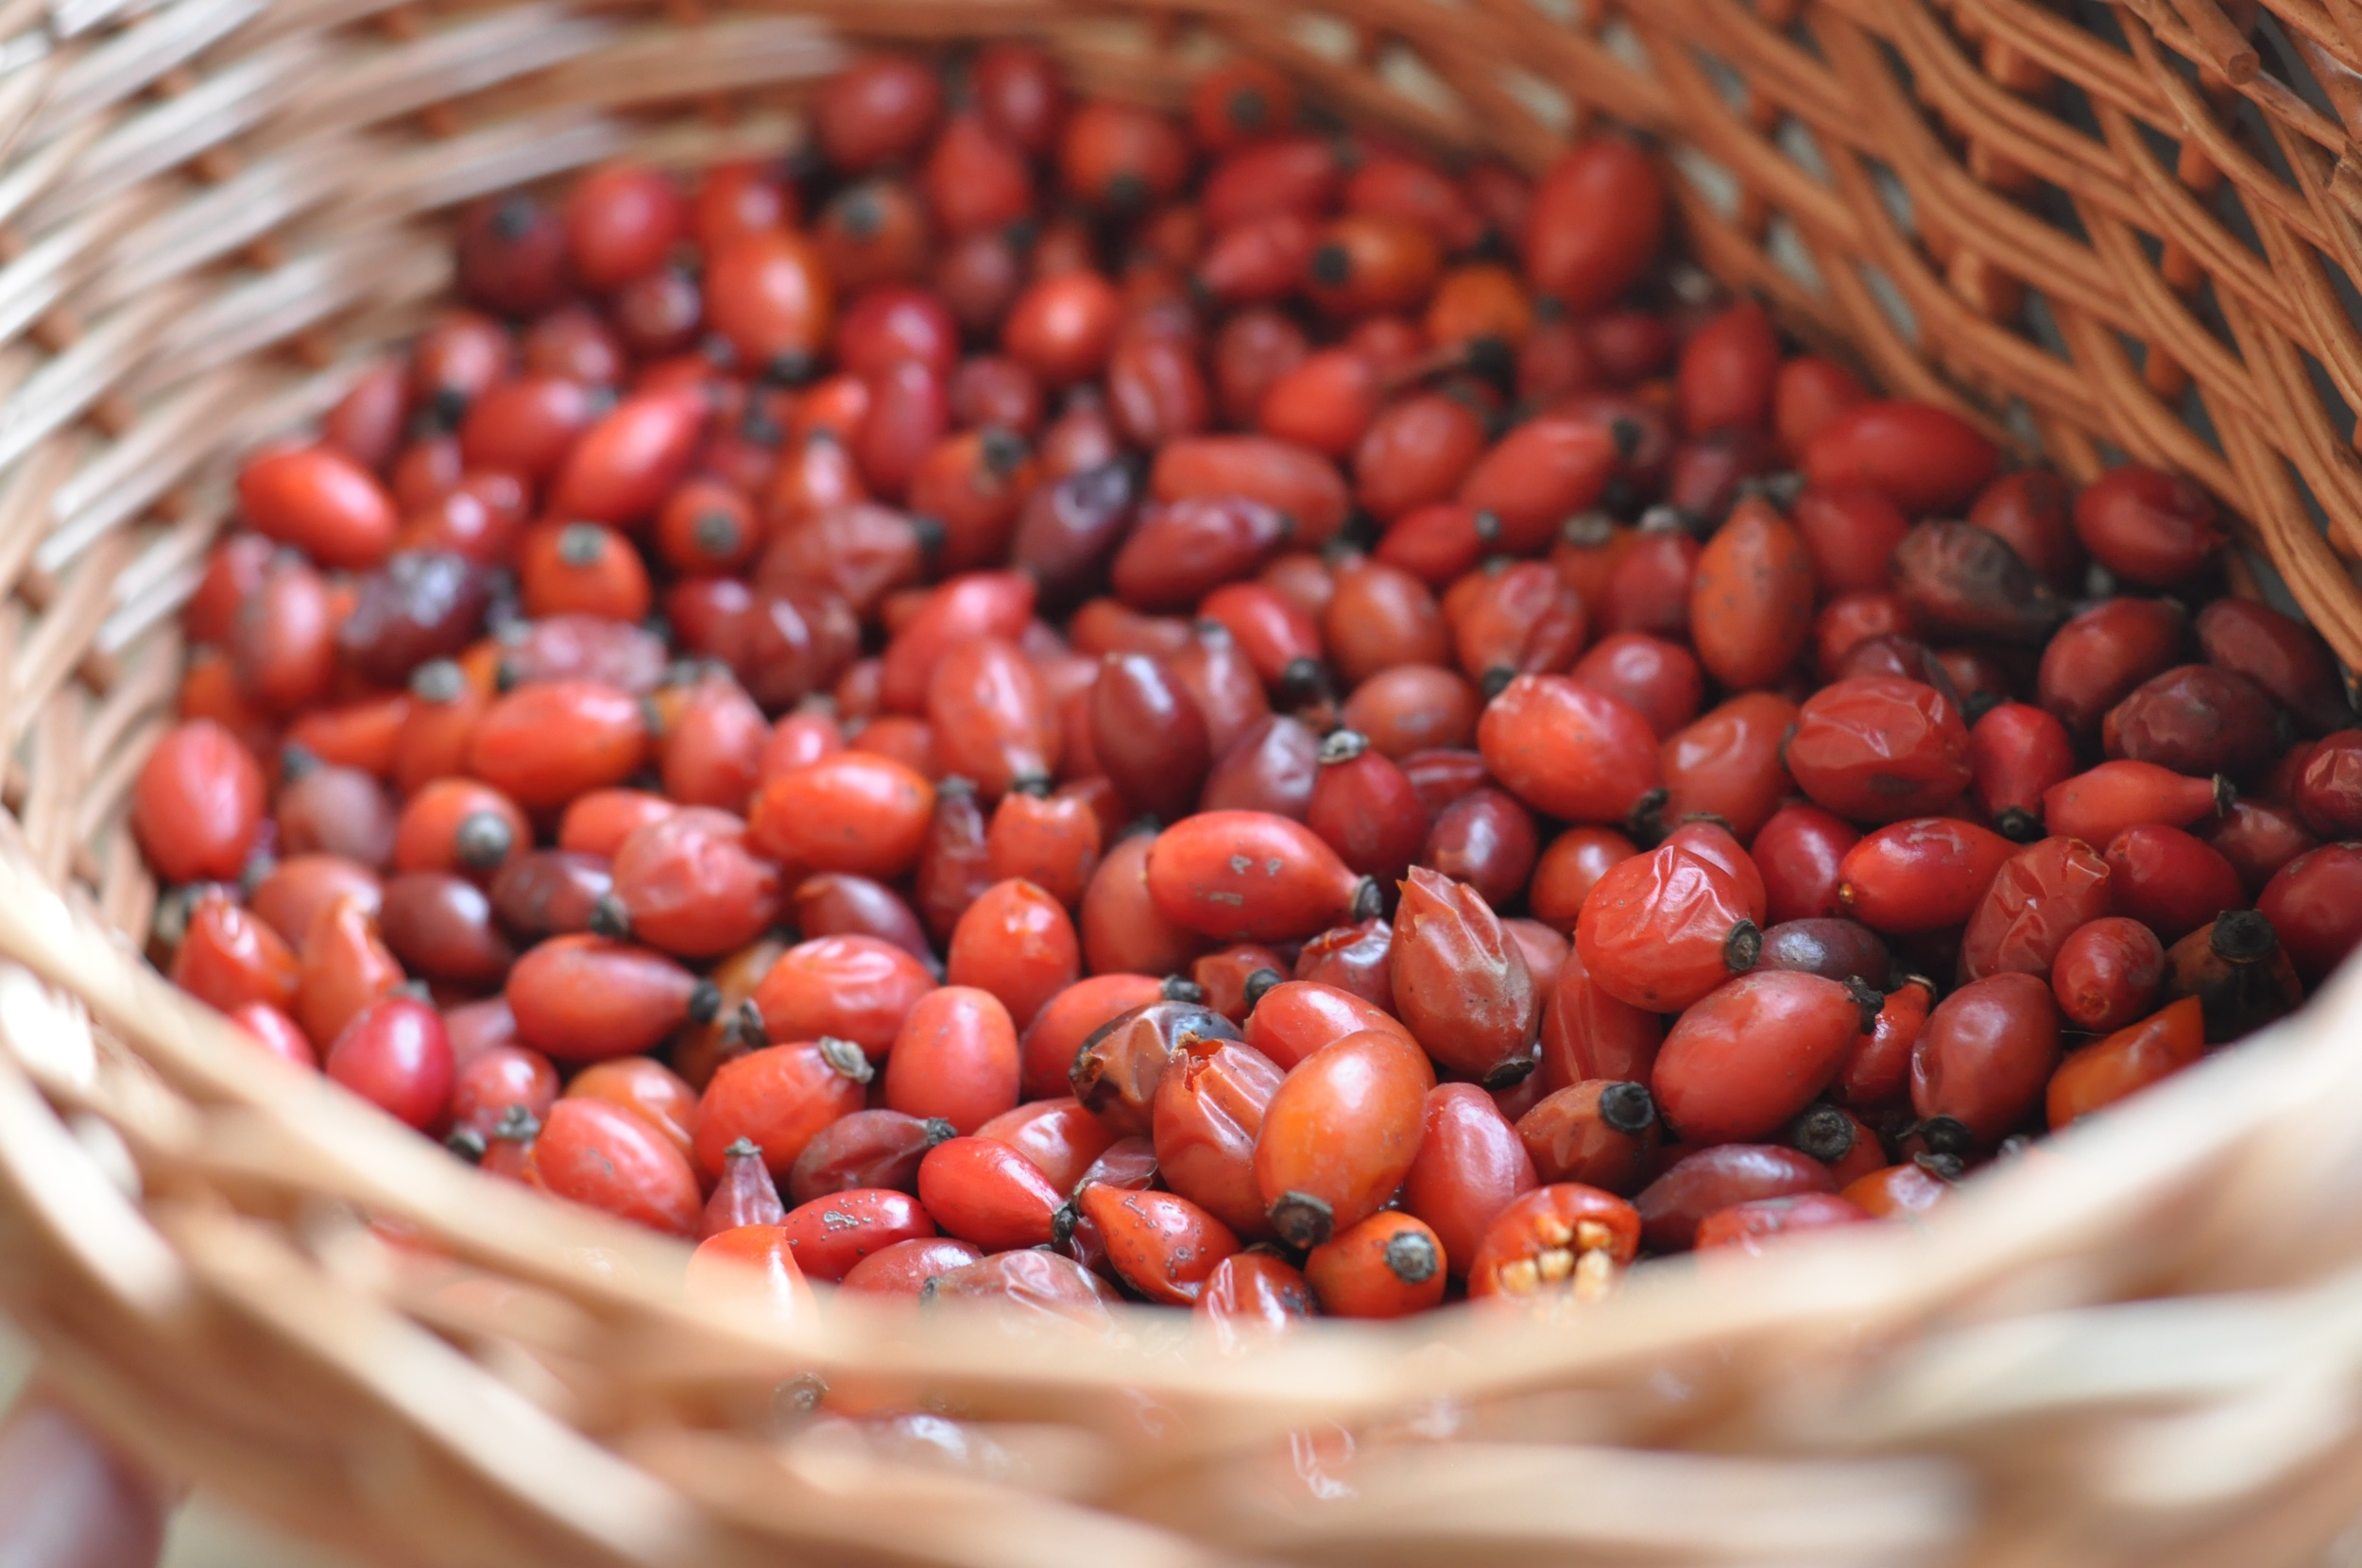 A basket full of rose hips collected in Fattoria Barbialla Nuova. Recipe of rose hips jam.